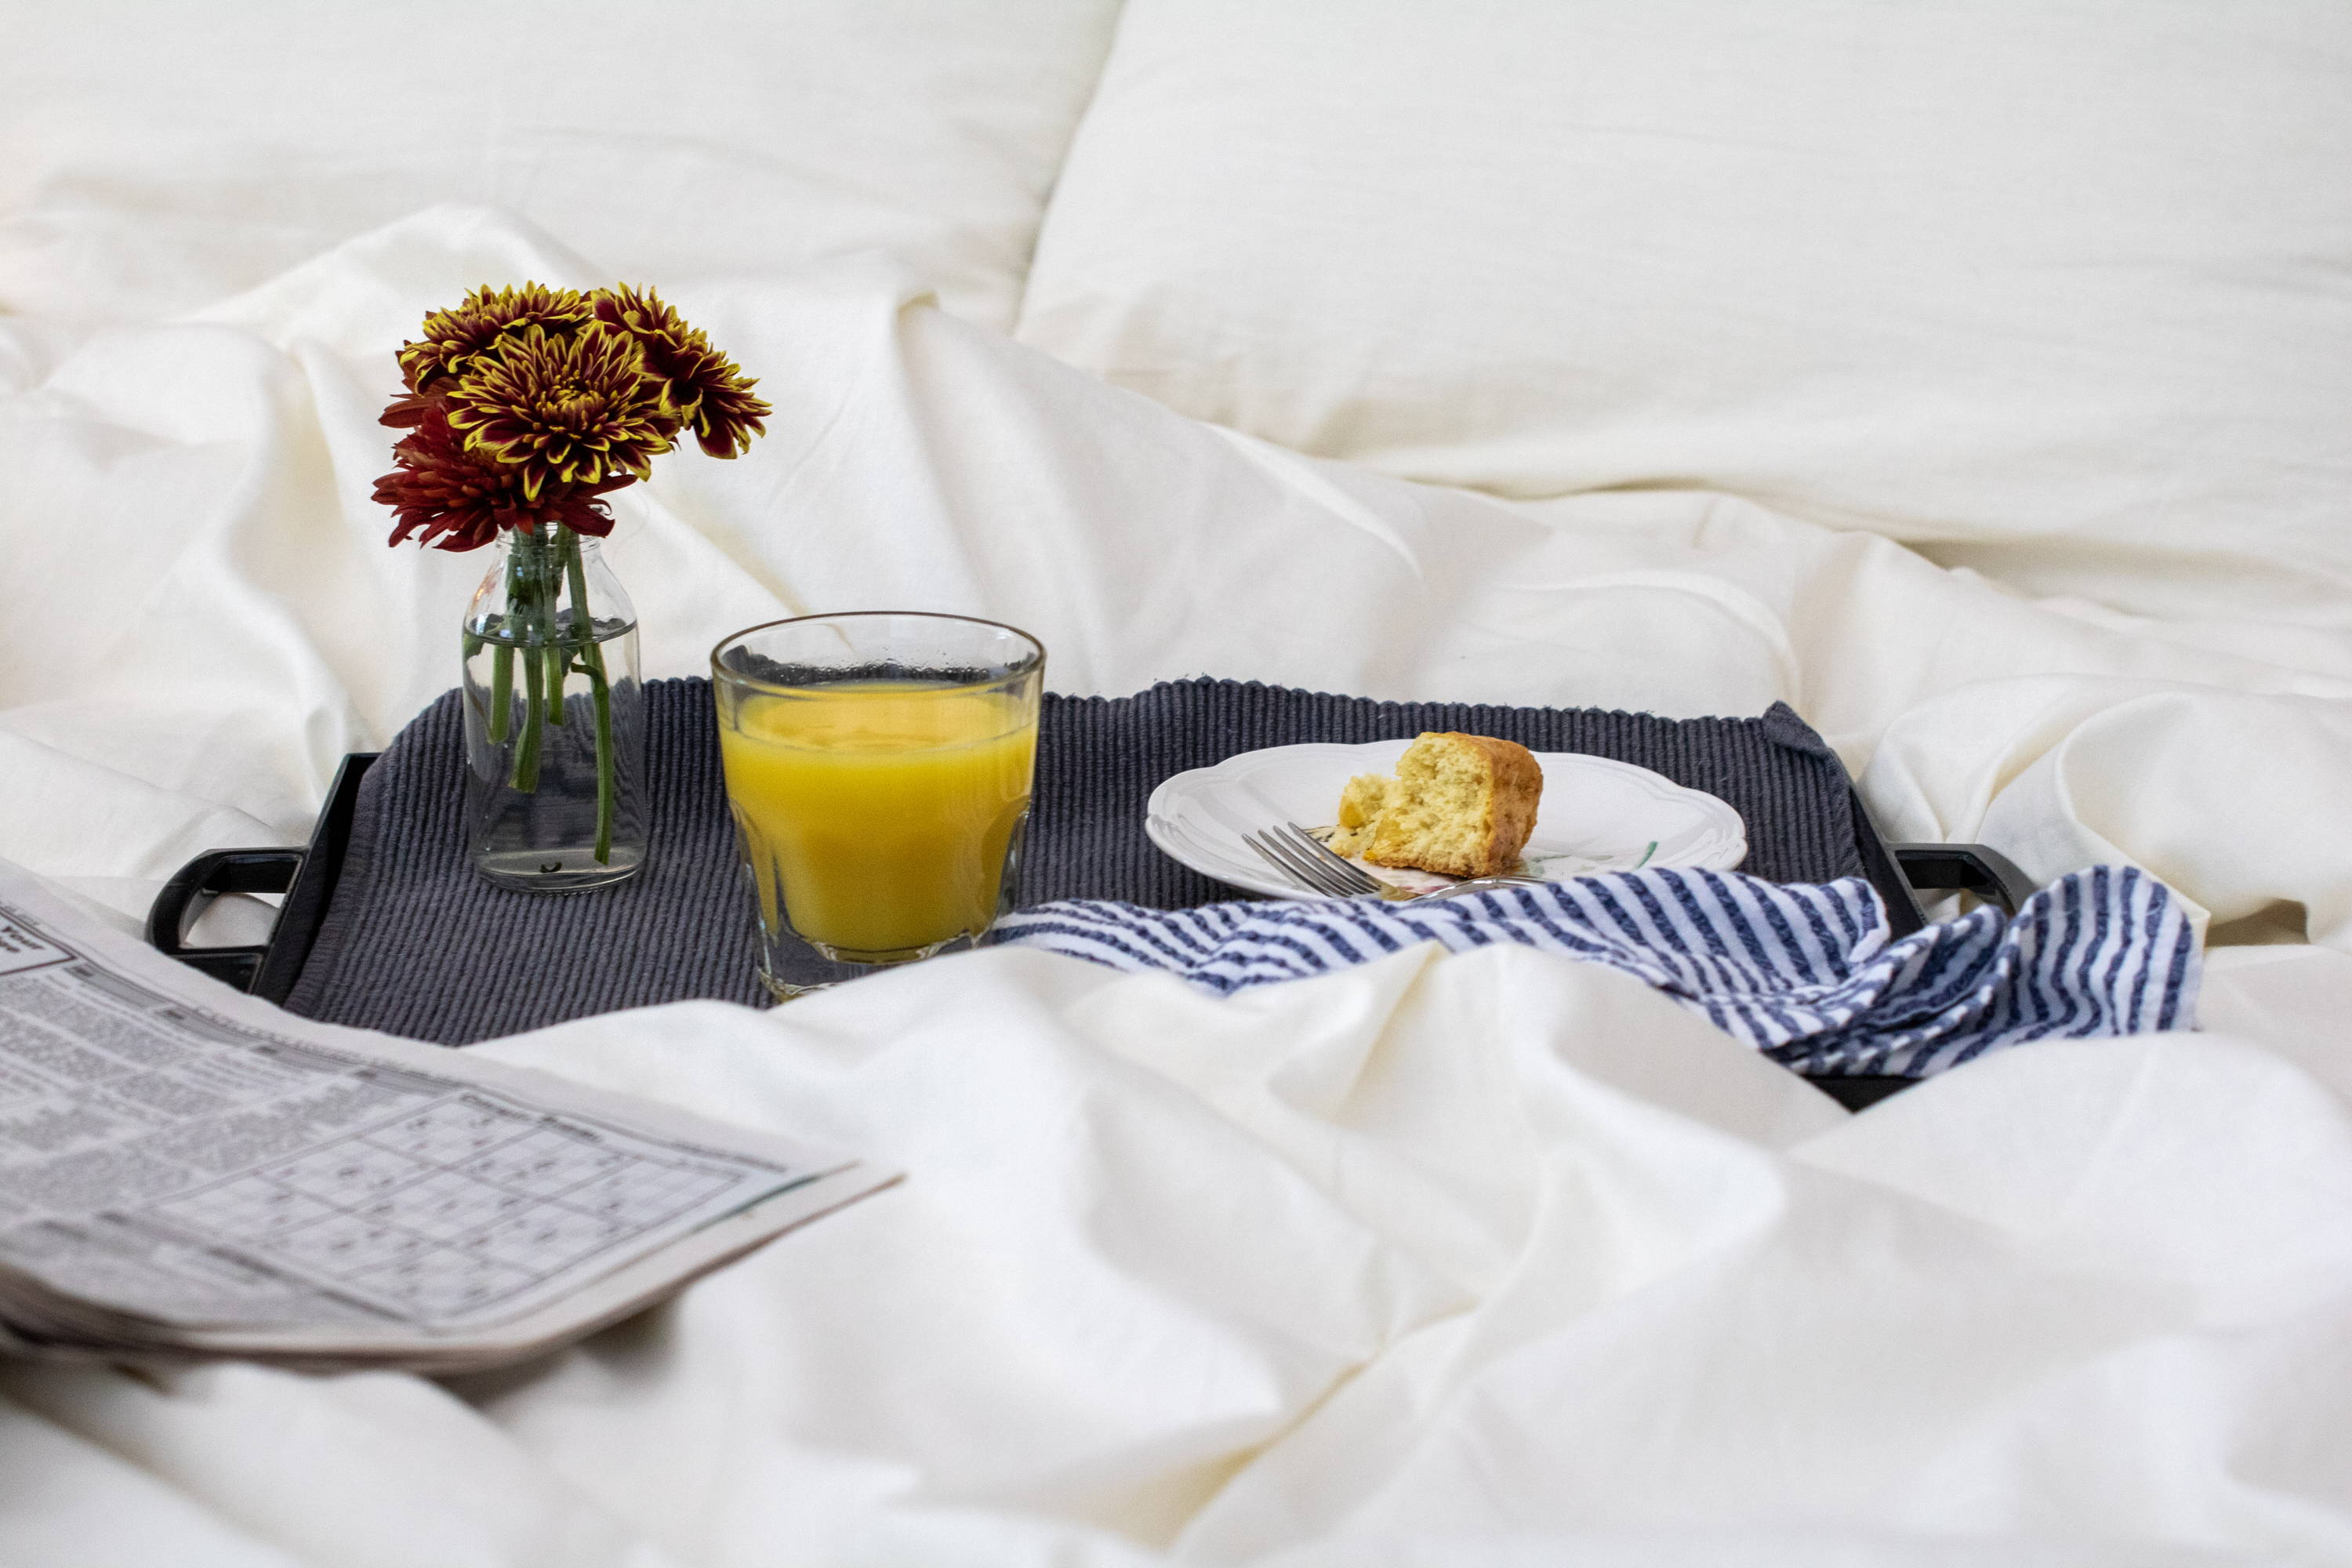 Breakfast in Bed on Wool Comforter Sonoma Wool Company Eco-friendly Bedding Wool Bedding